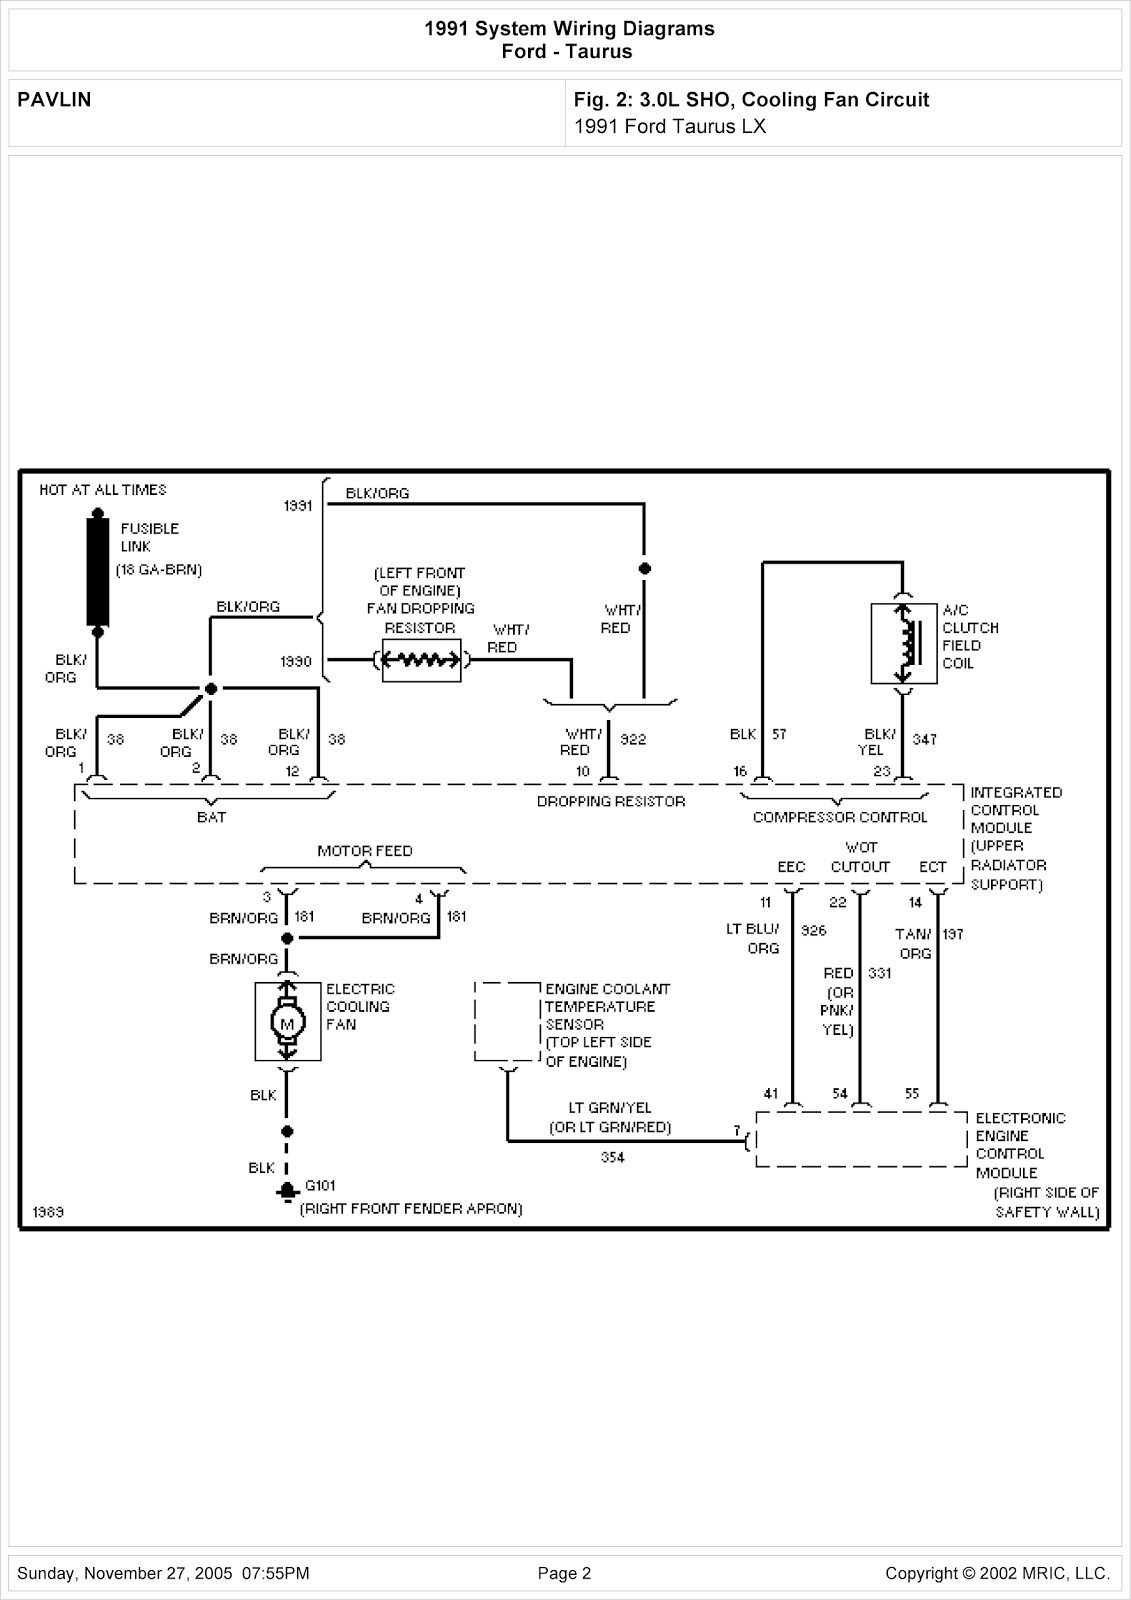 1999 ford taurus system wiring diagram cooling fan circuit ... taurus wiring schematic #3